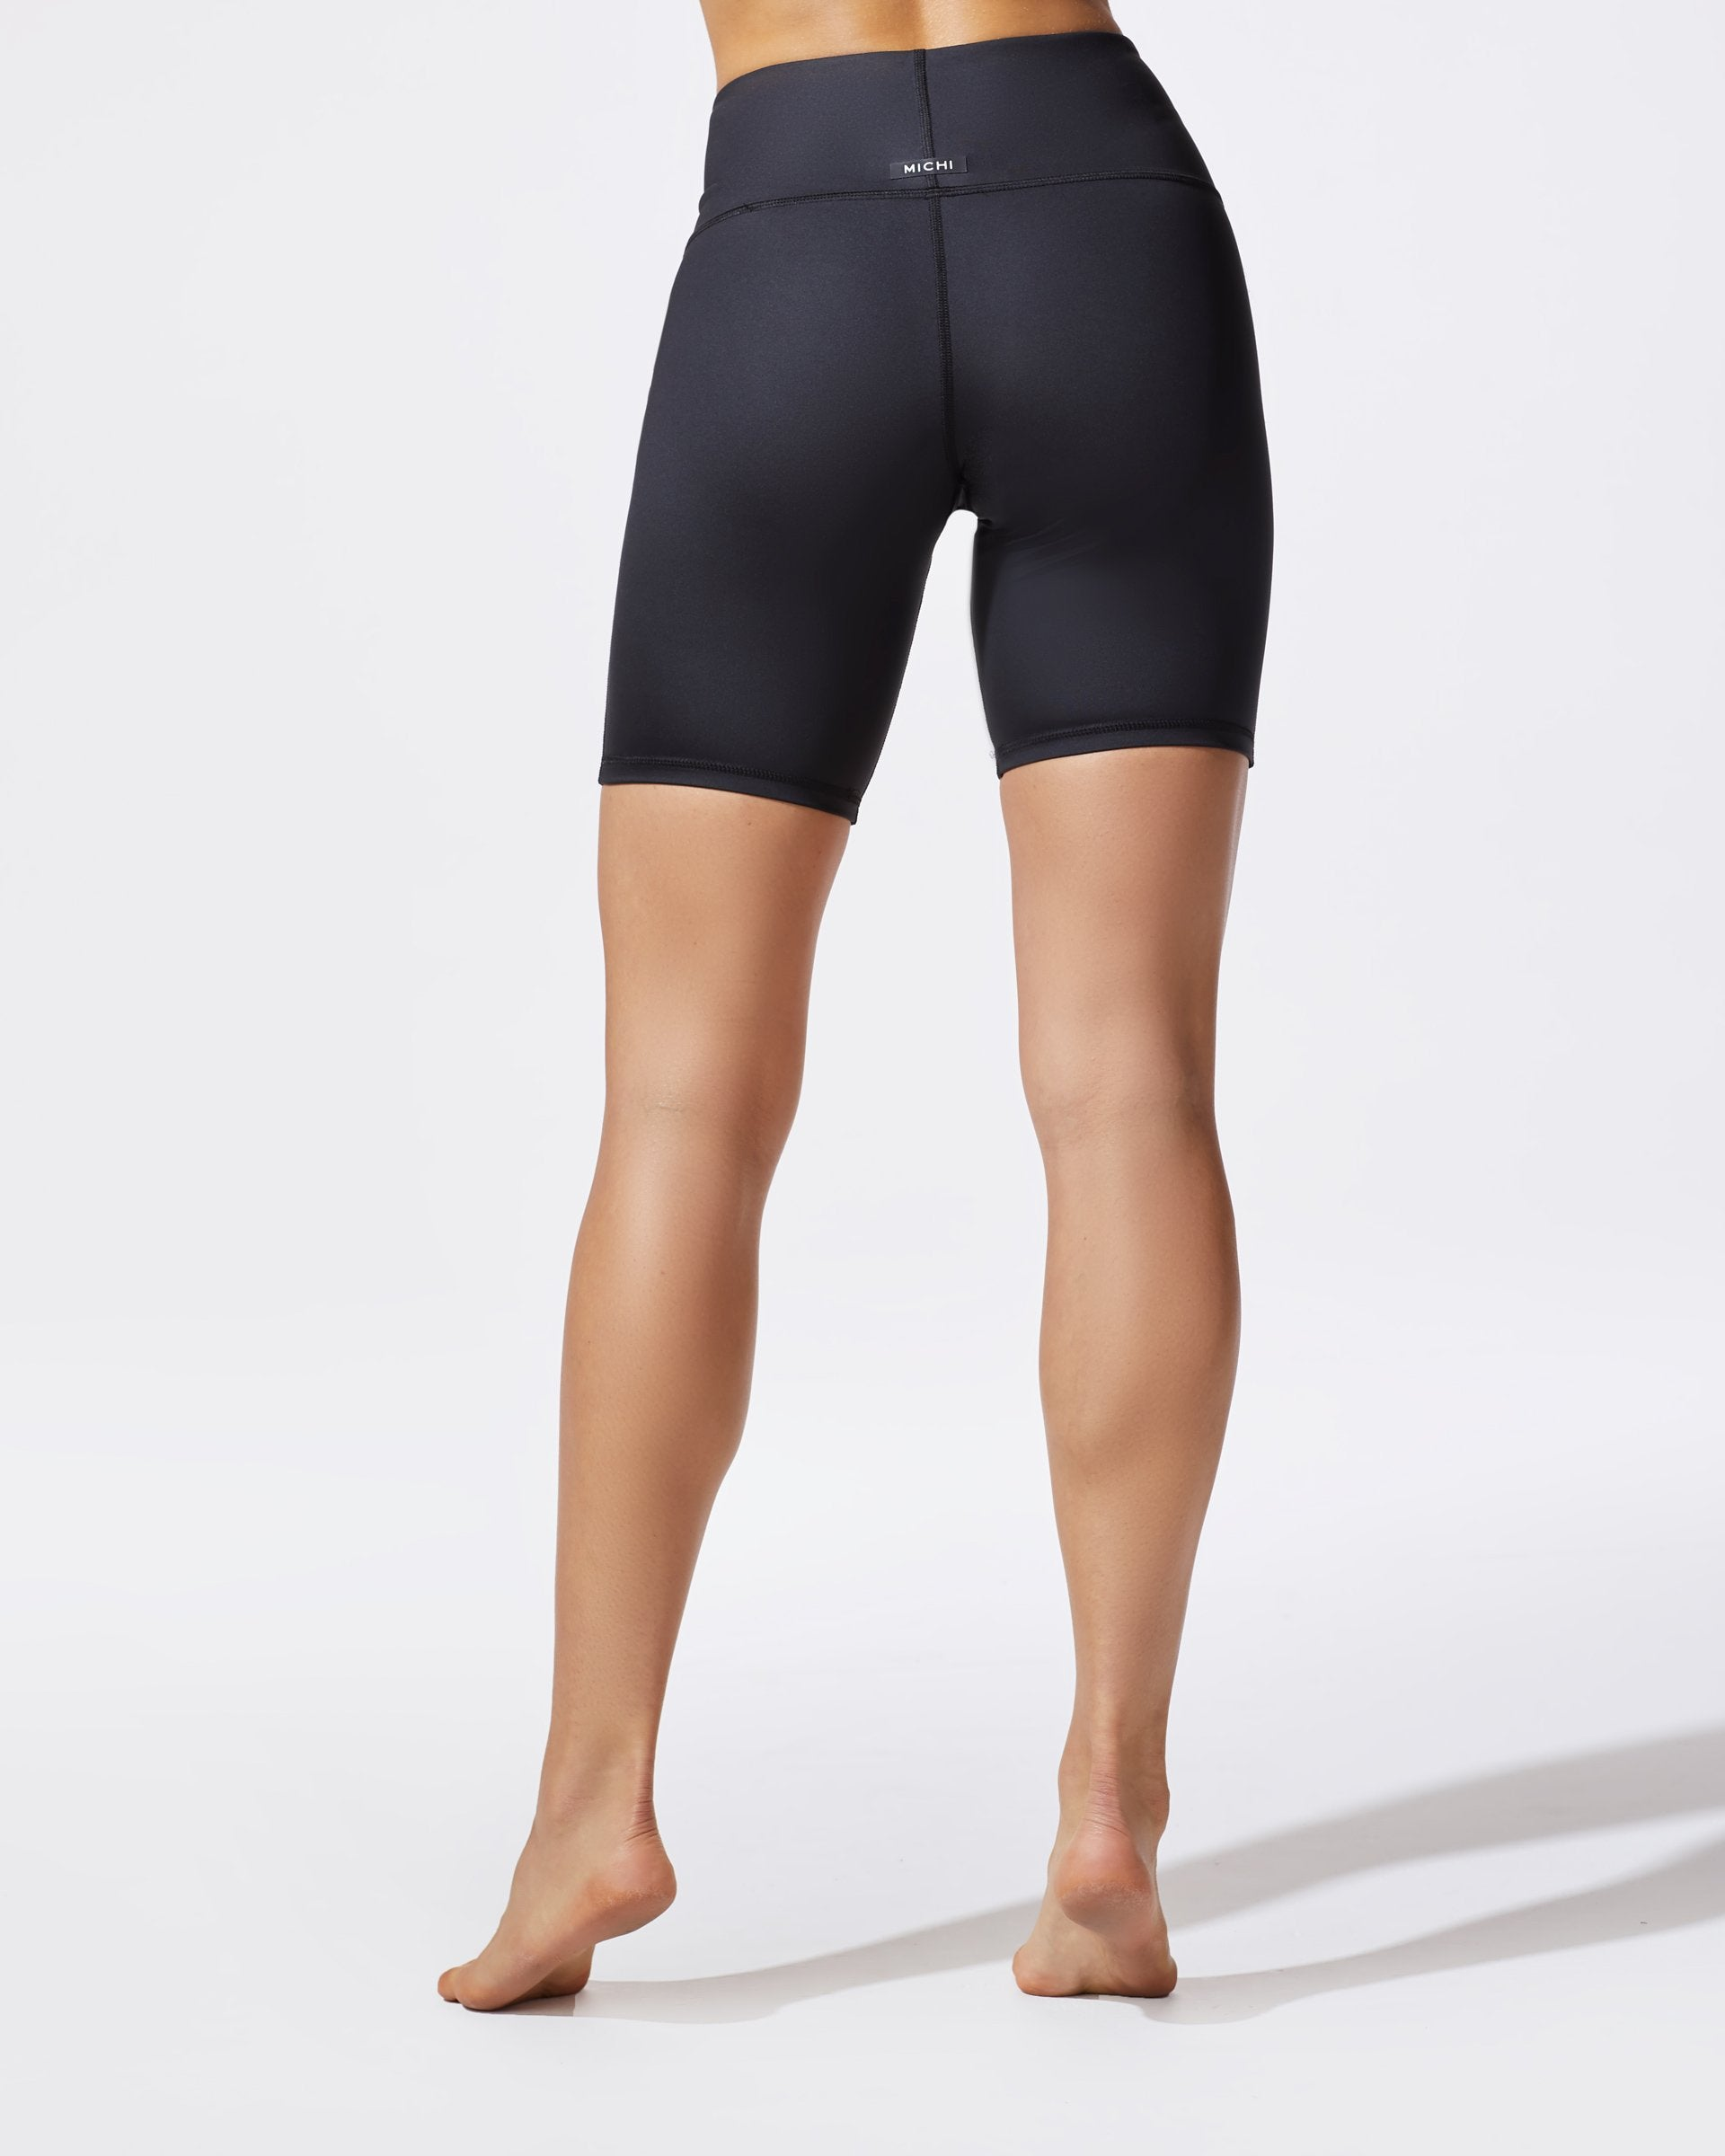 Instinct Bike Short - Black